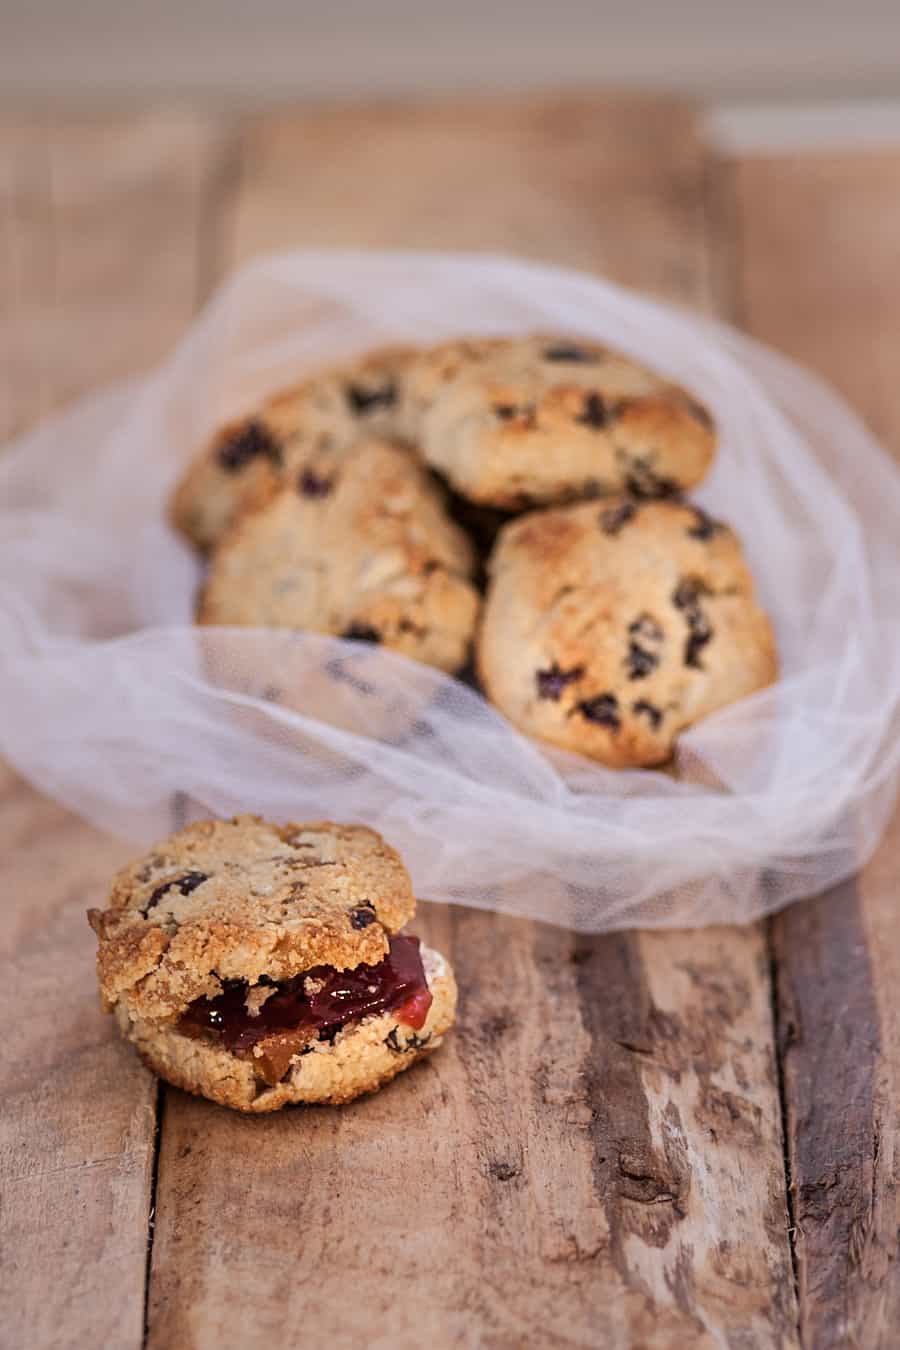 Almond flour scones filled with dried apricots, dried cranberries, sunflower seeds and topped with butter and jelly